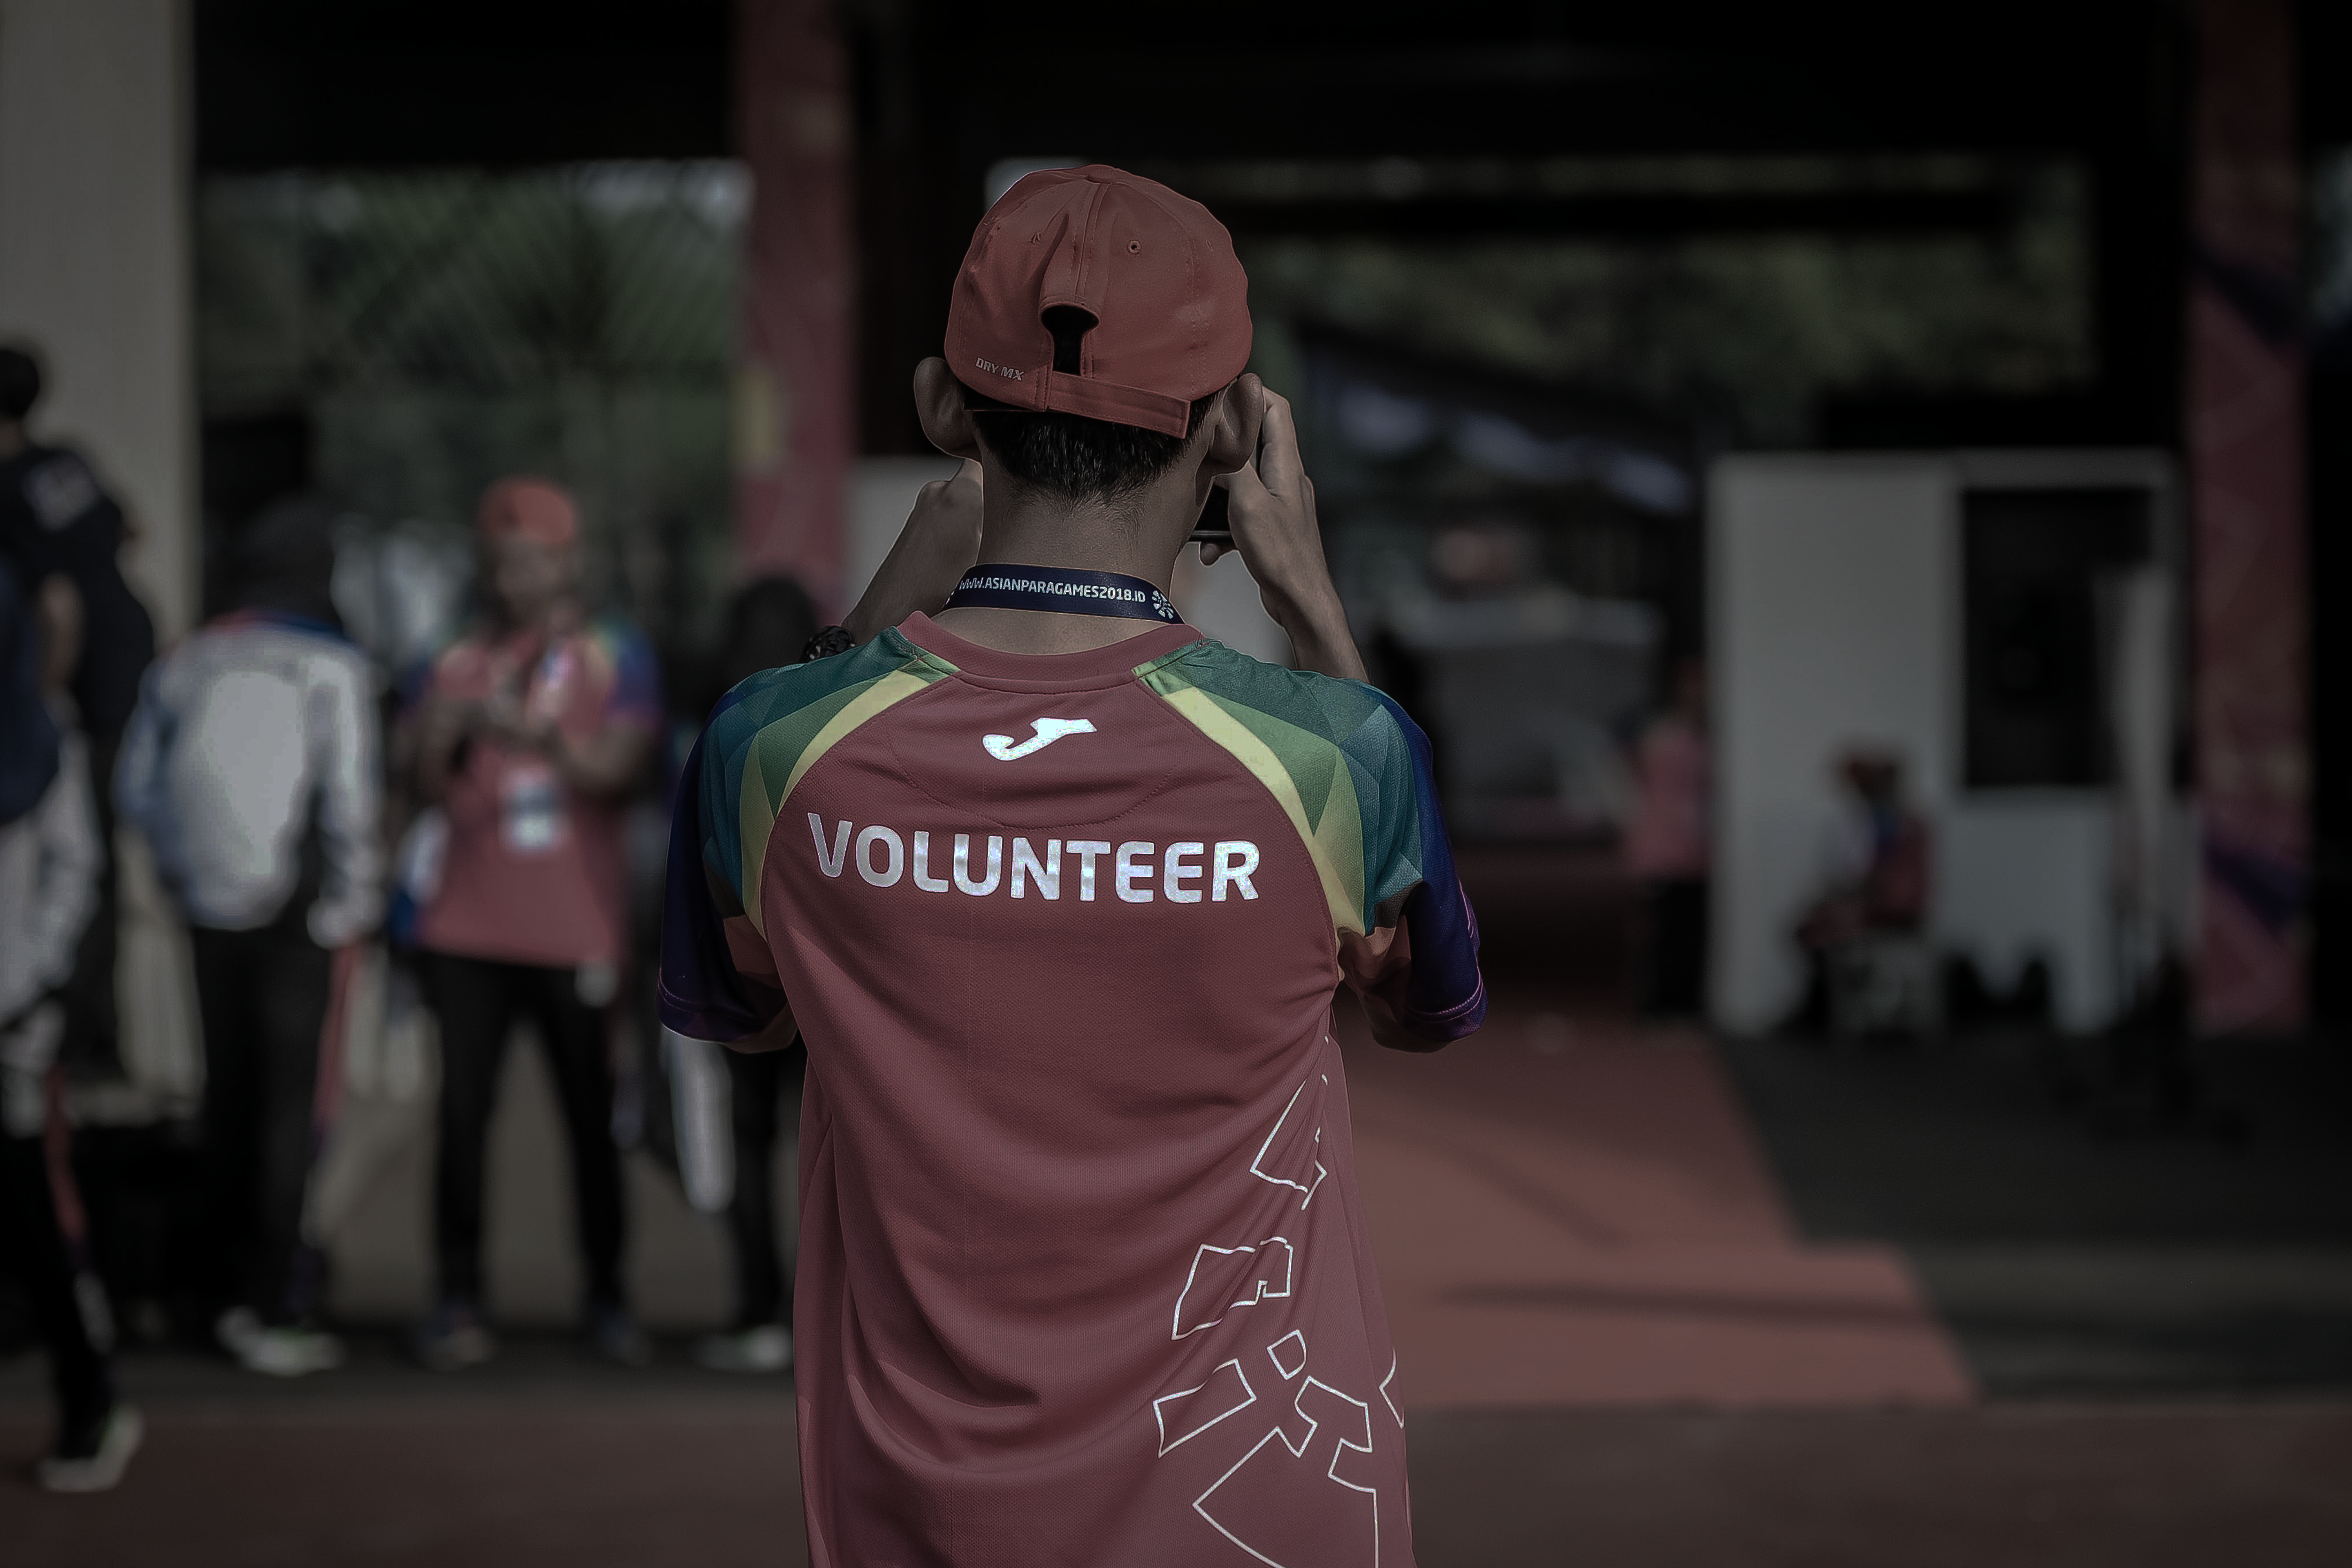 Management and support for volunteering